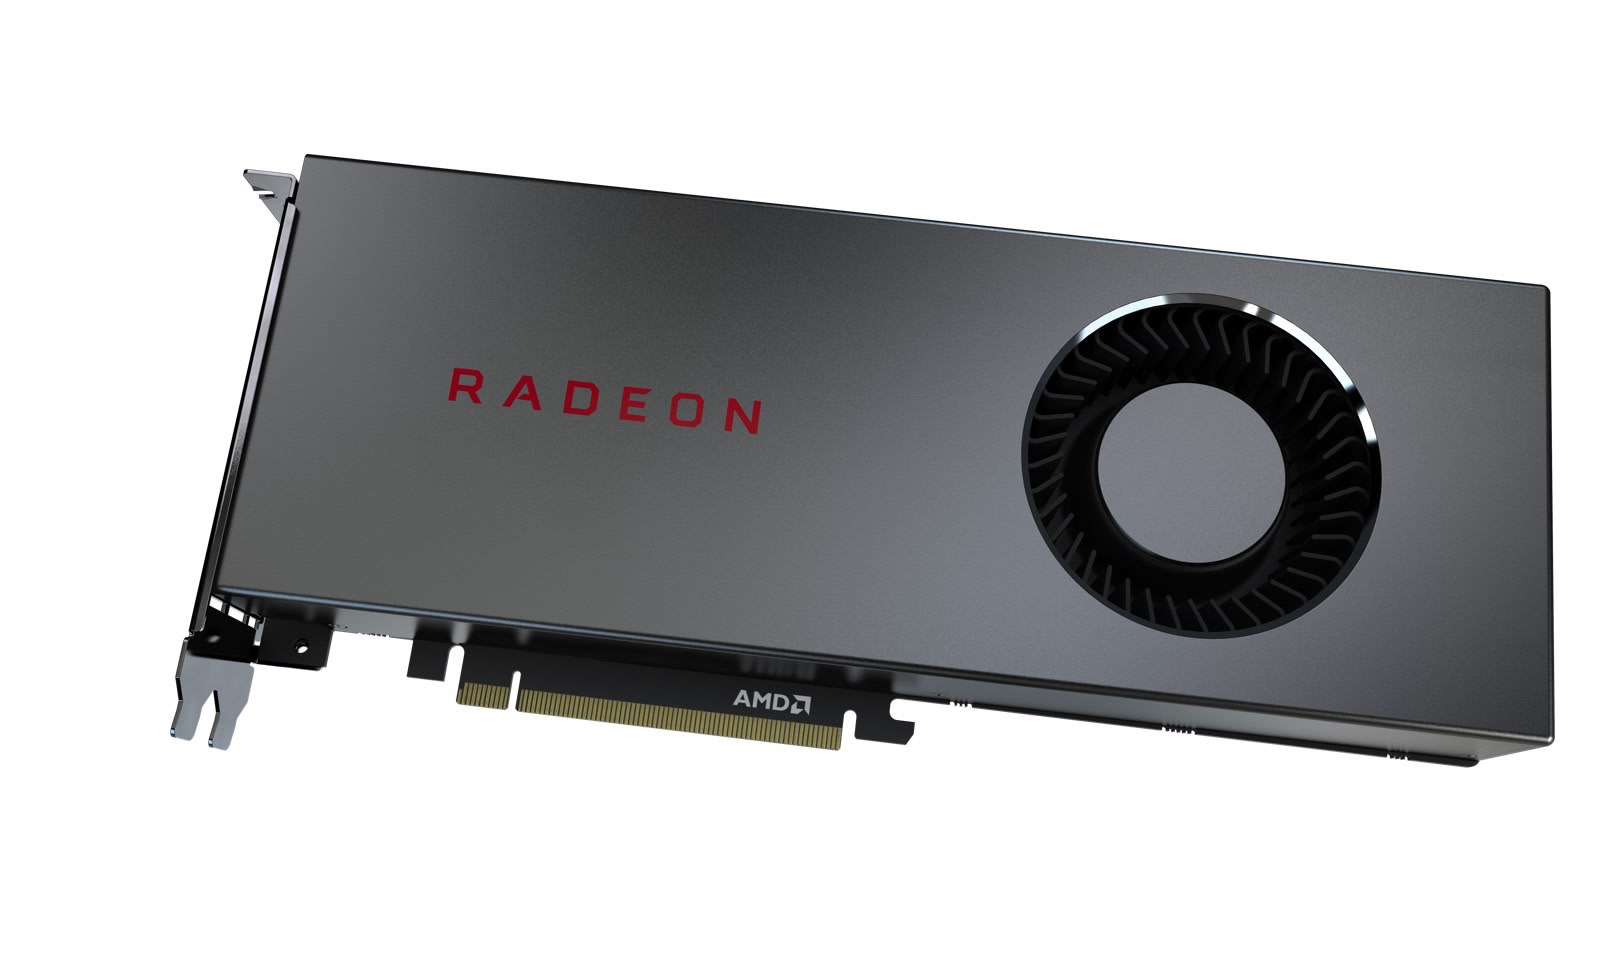 Radeon RX 5700 and 5700 XT review: AMD brings the fight back